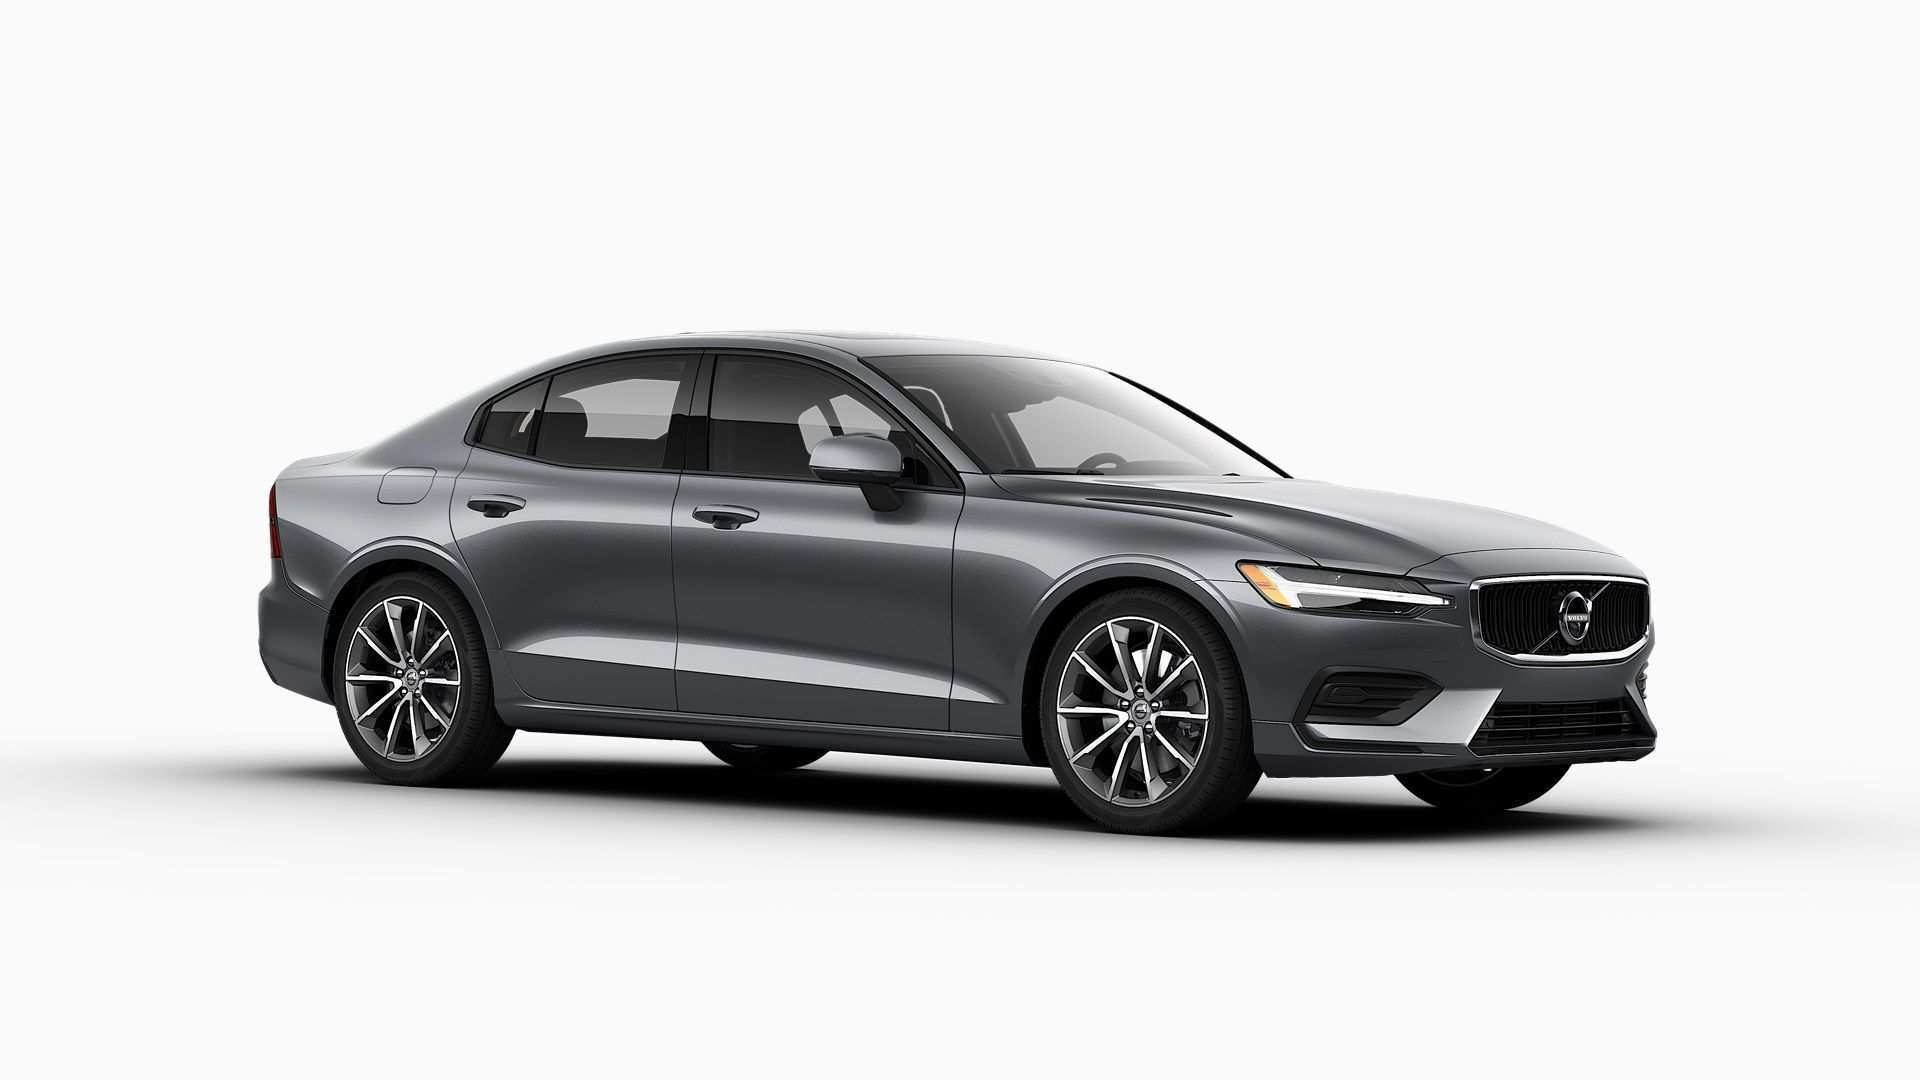 65 Best Review New Volvo New S60 2019 Release Date And Specs Prices with New Volvo New S60 2019 Release Date And Specs